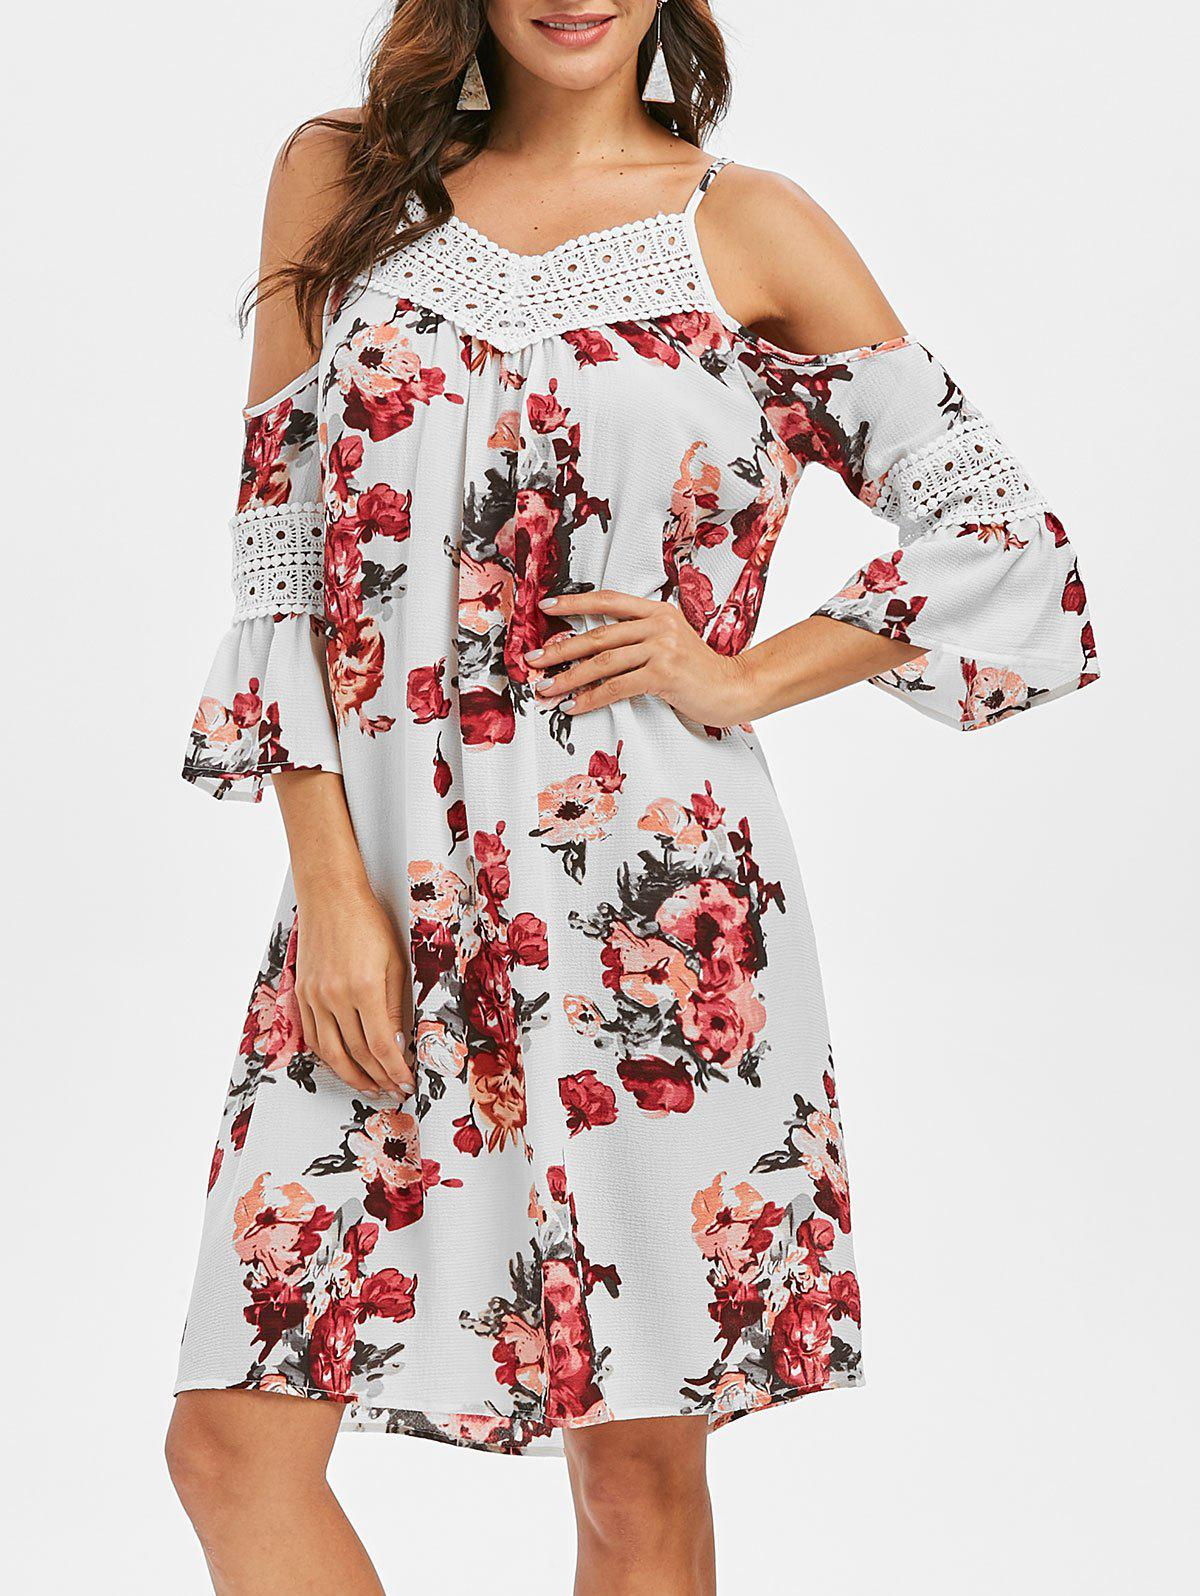 Crochet Flower Cold Shoulder Tunic Dress - multicolor S